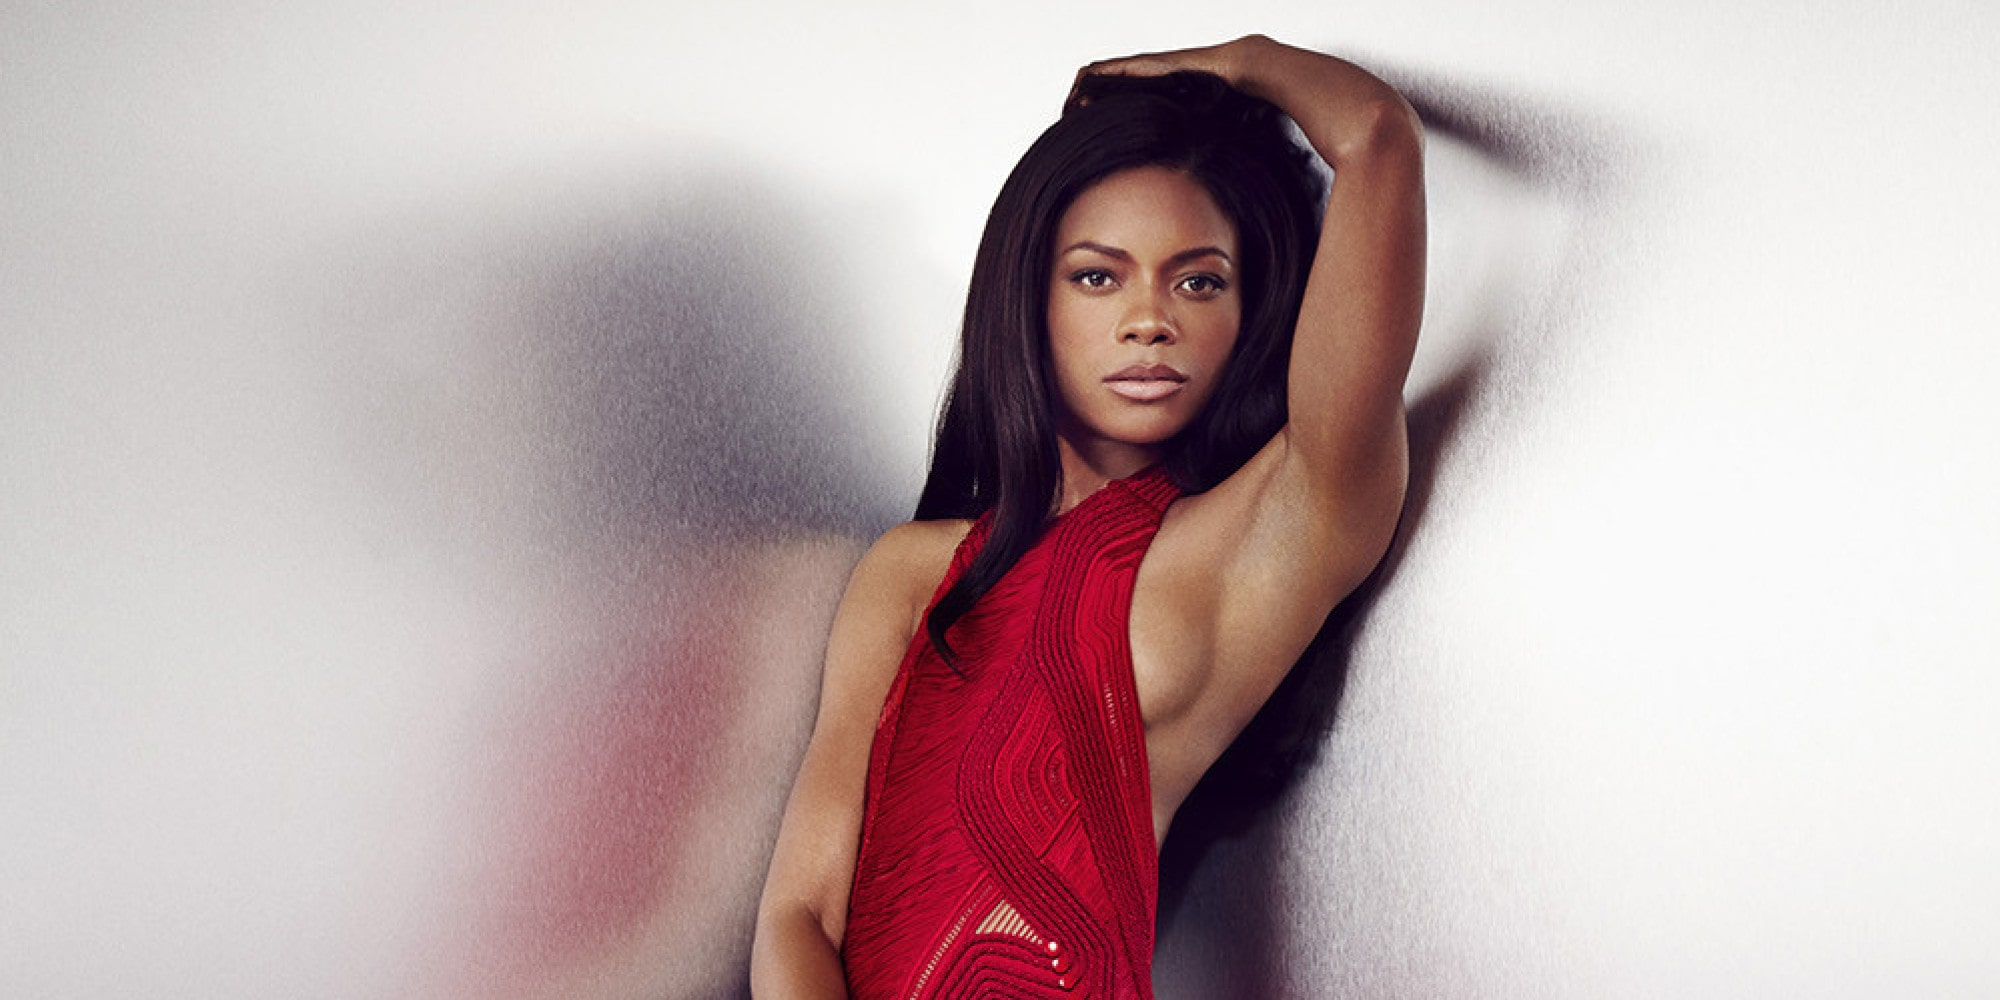 60+ Hot Pictures Of Naomie Harris Are Just Sexy As Hell